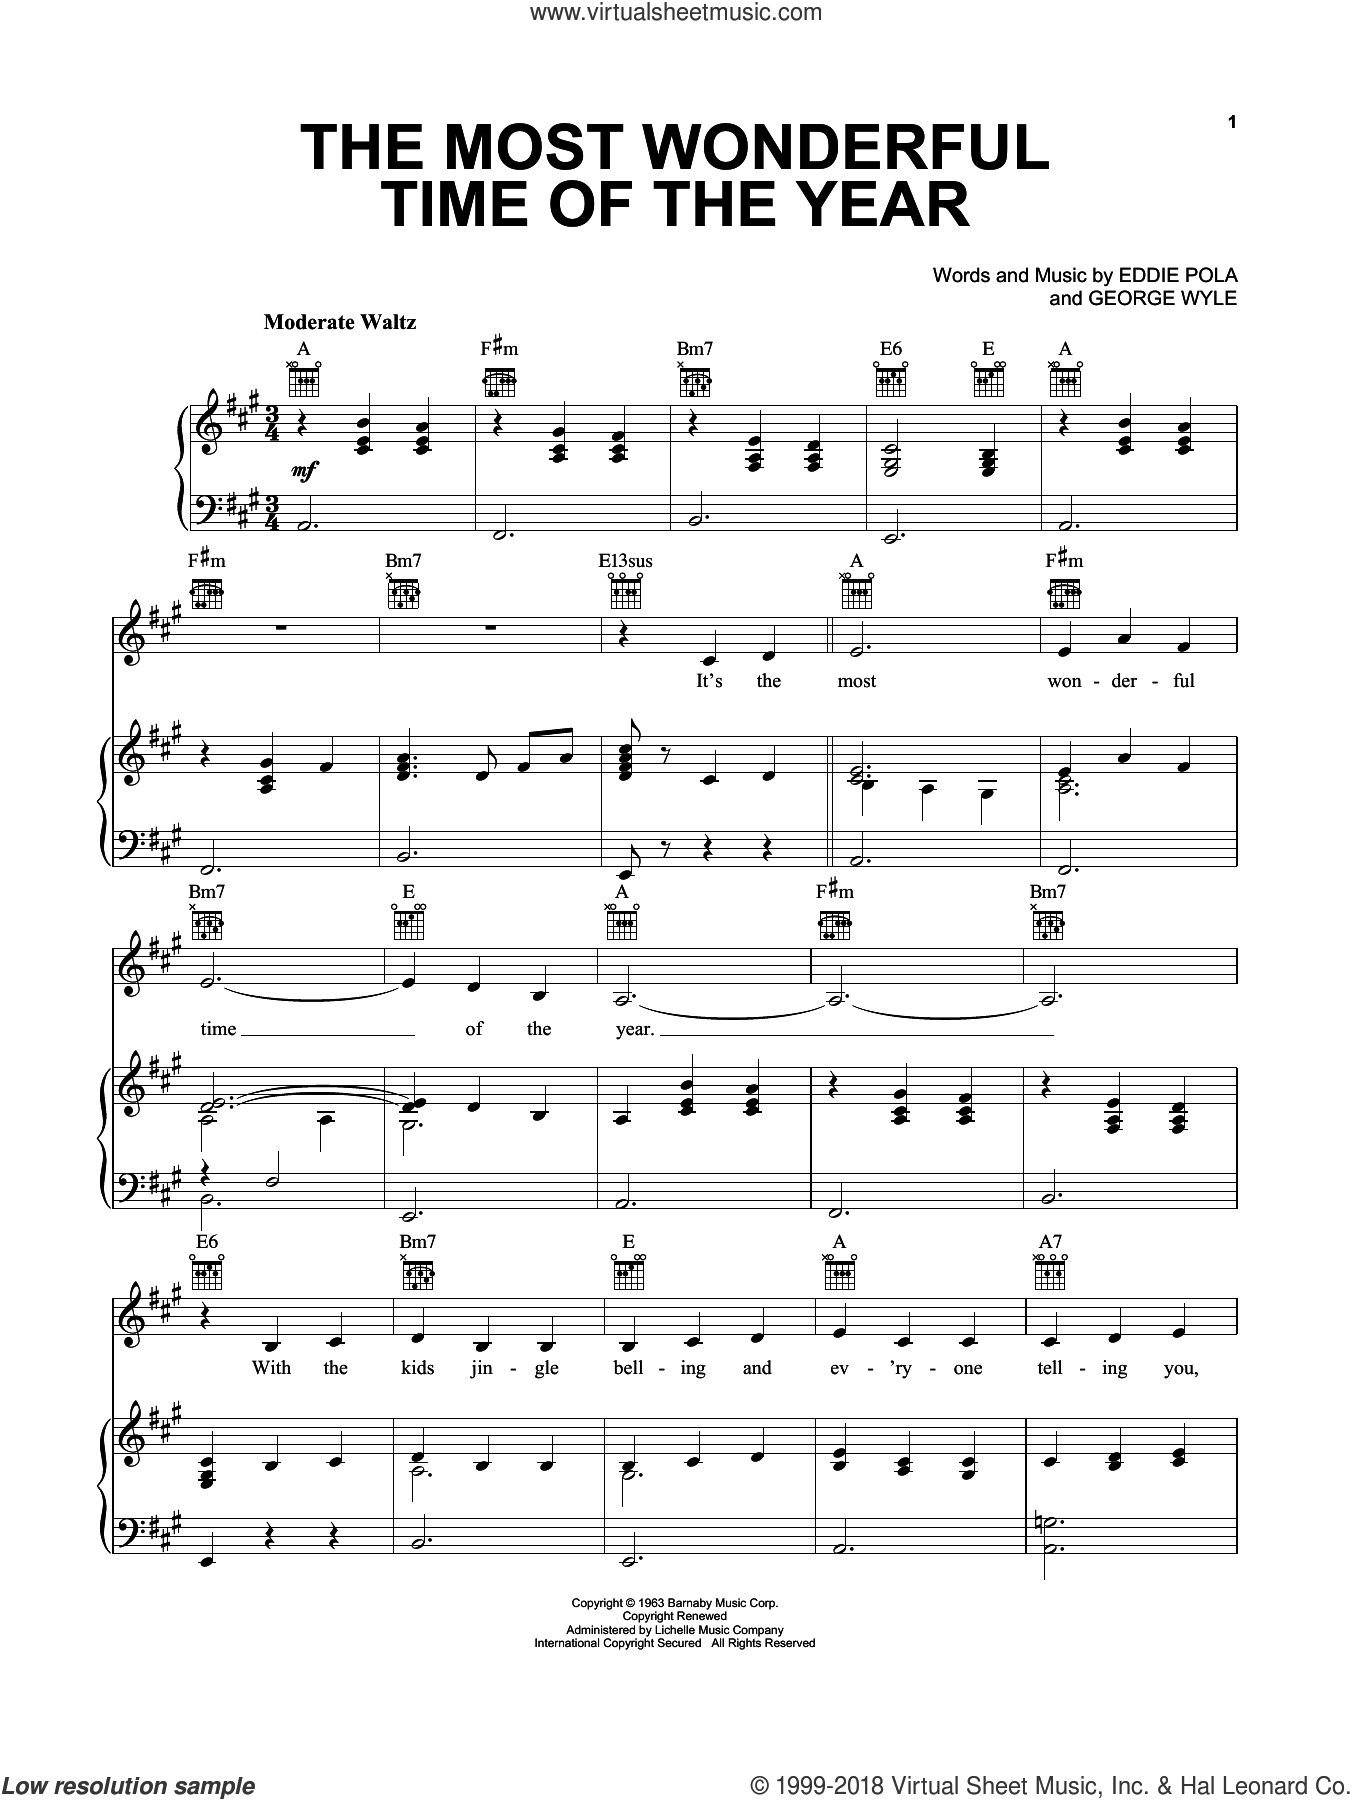 The Most Wonderful Time Of The Year sheet music for voice, piano or guitar by Pentatonix, Eddie Pola and George Wyle, intermediate skill level